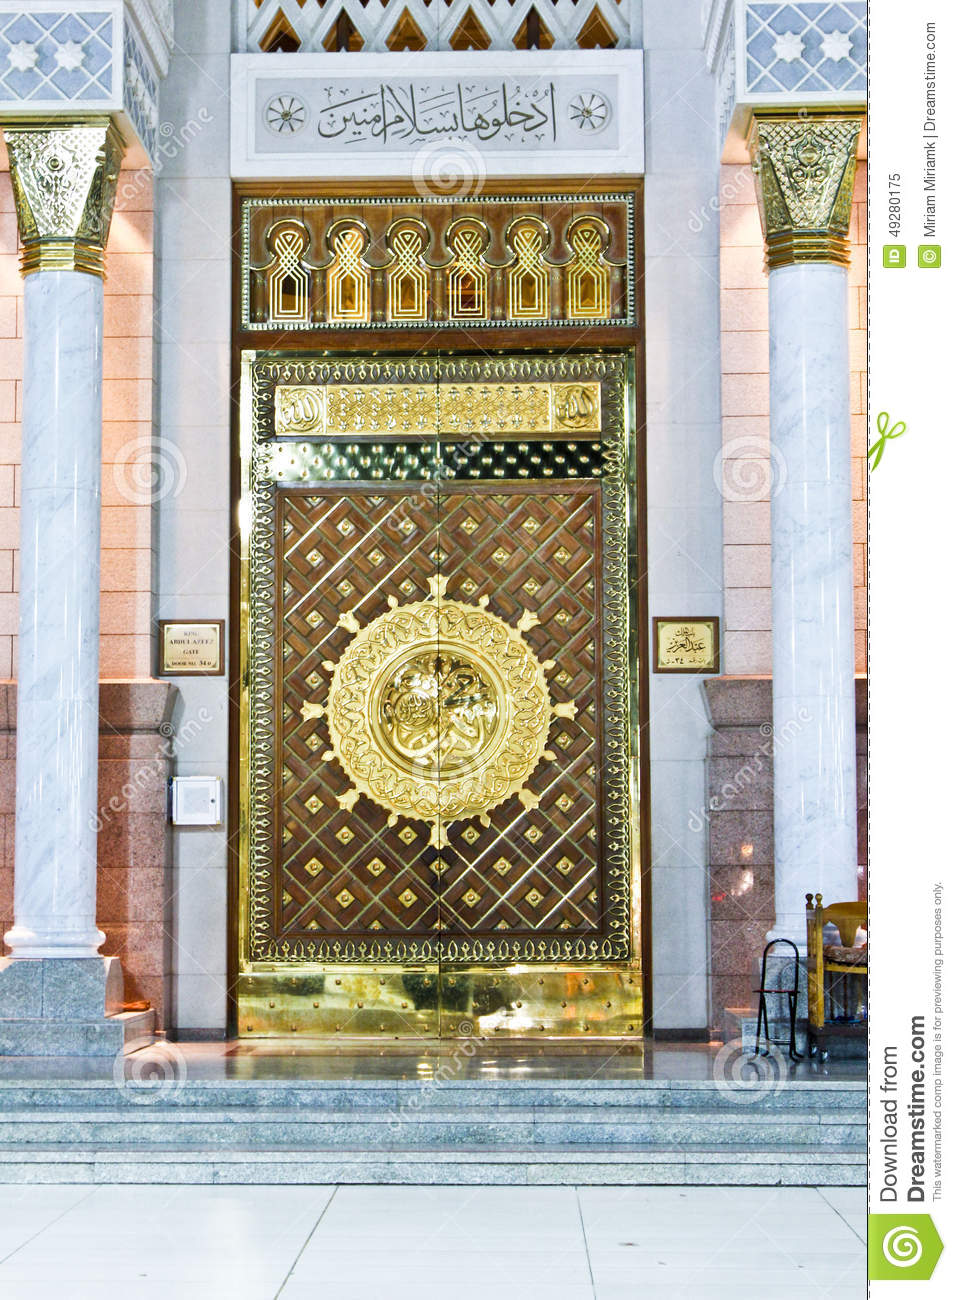 The large magestic doors of masjid nabawi gold doors islamic architecture islam.  sc 1 st  Dreamstime.com & The Large Magestic Doors Of Masjid Nabawi Gold Doors Islamic ...